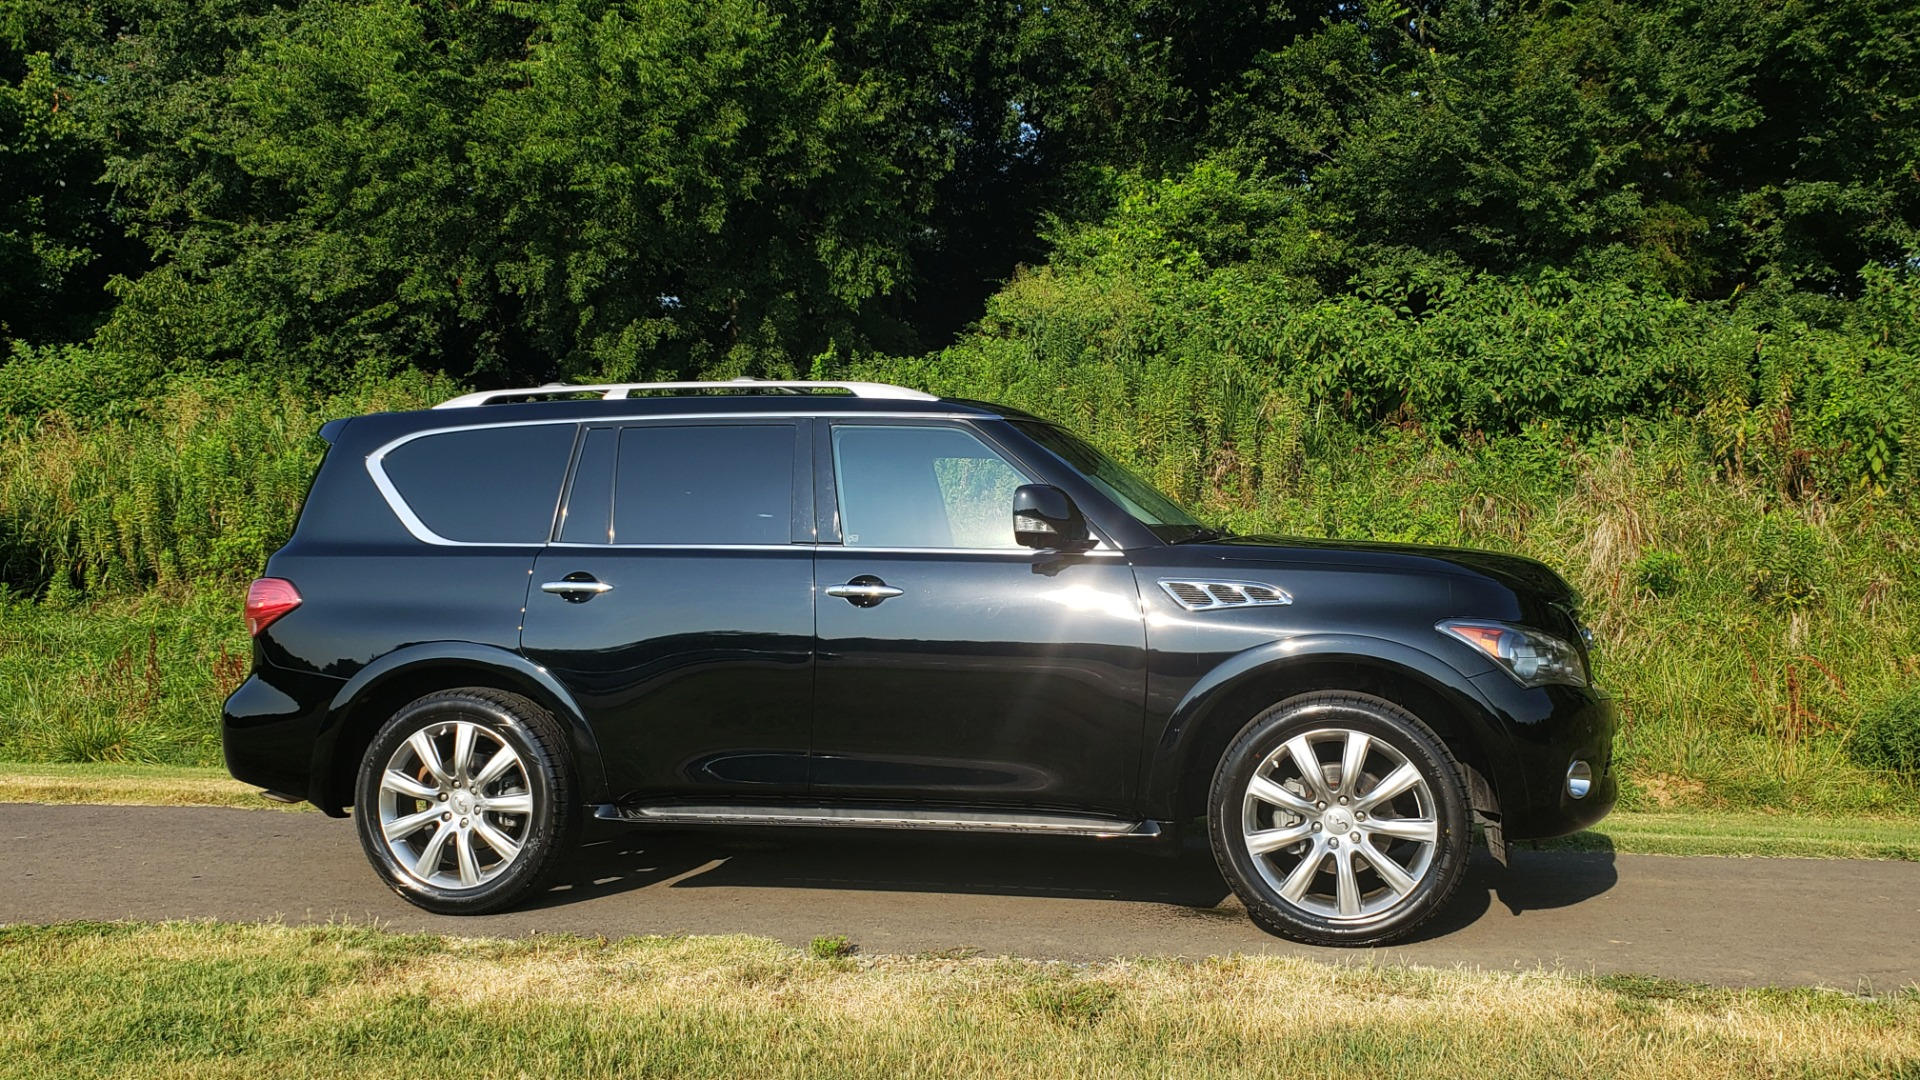 Used 2013 INFINITI QX56 NAV / SUNROOF / BOSE / THEATER / 3-ROW / REARVIEW for sale $21,495 at Formula Imports in Charlotte NC 28227 6